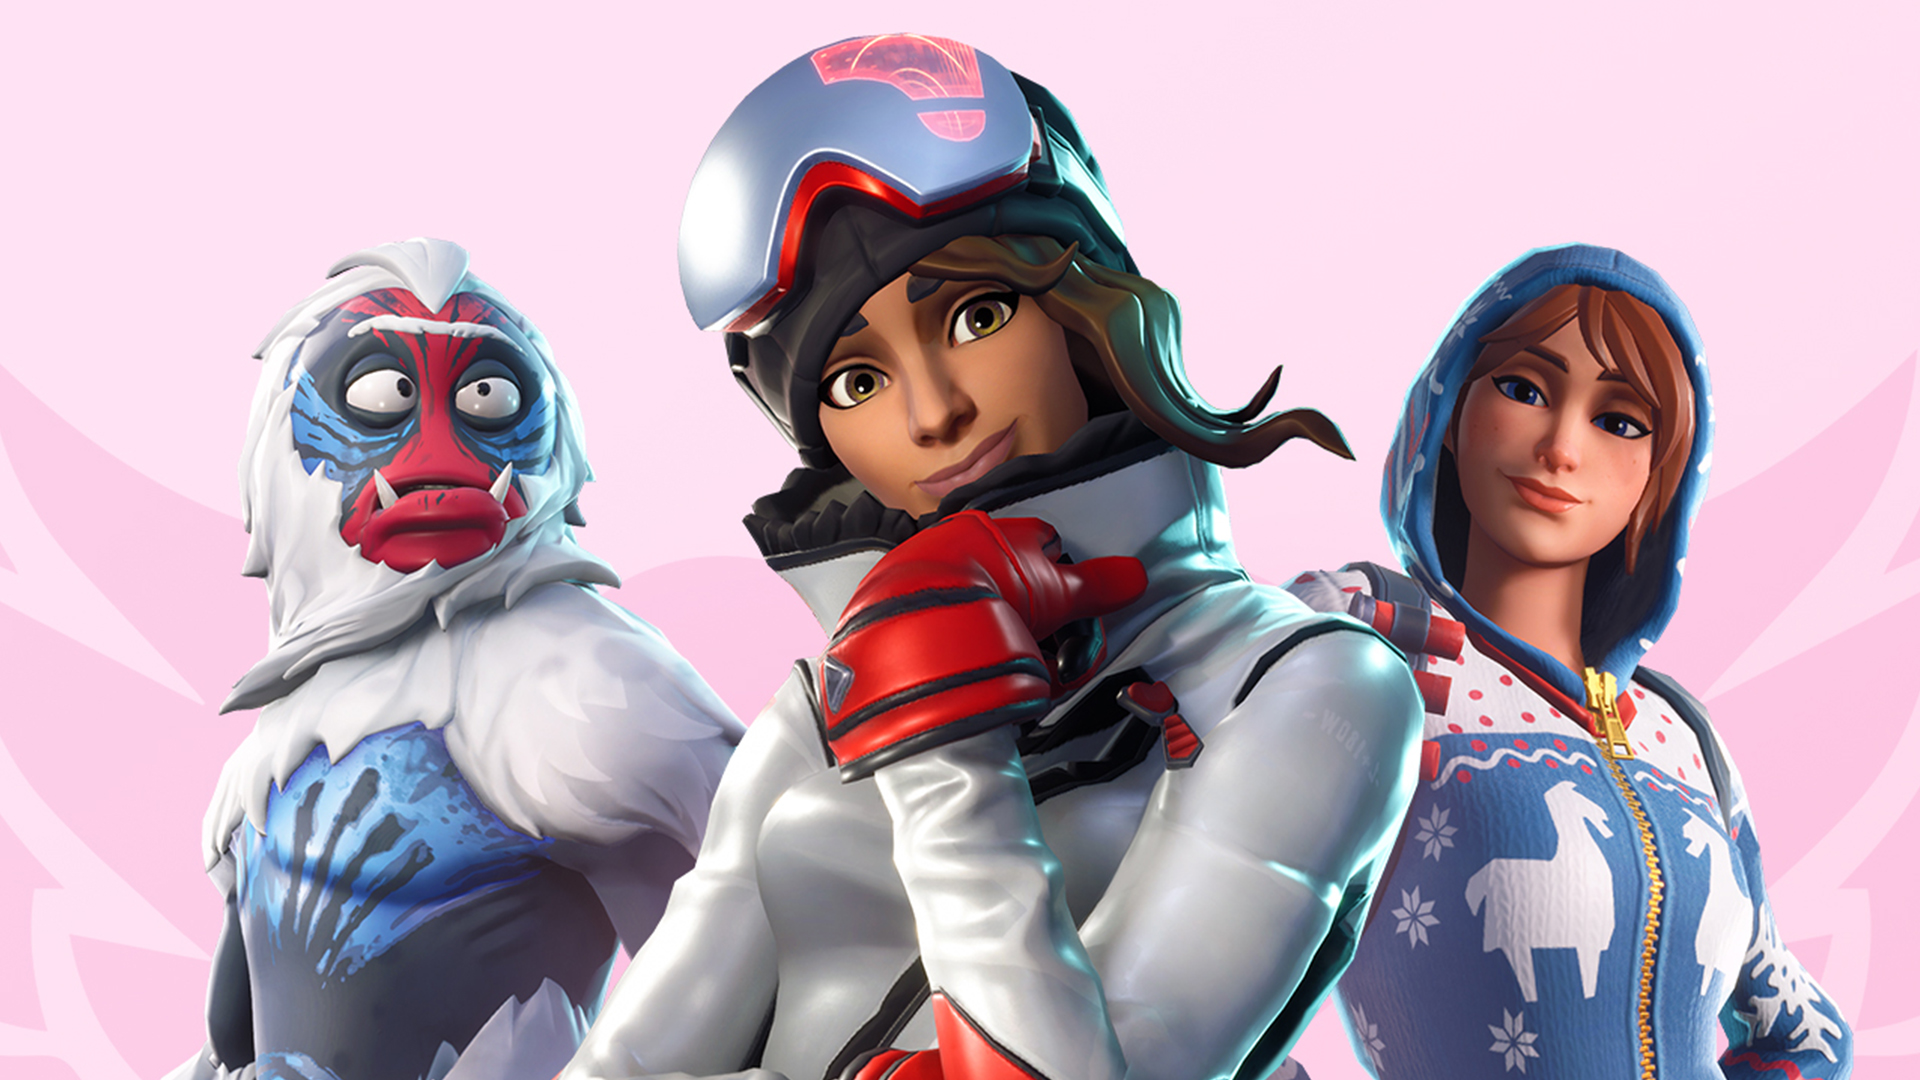 Fortnite invites you to Share the Love with new challenges and a 1920x1080